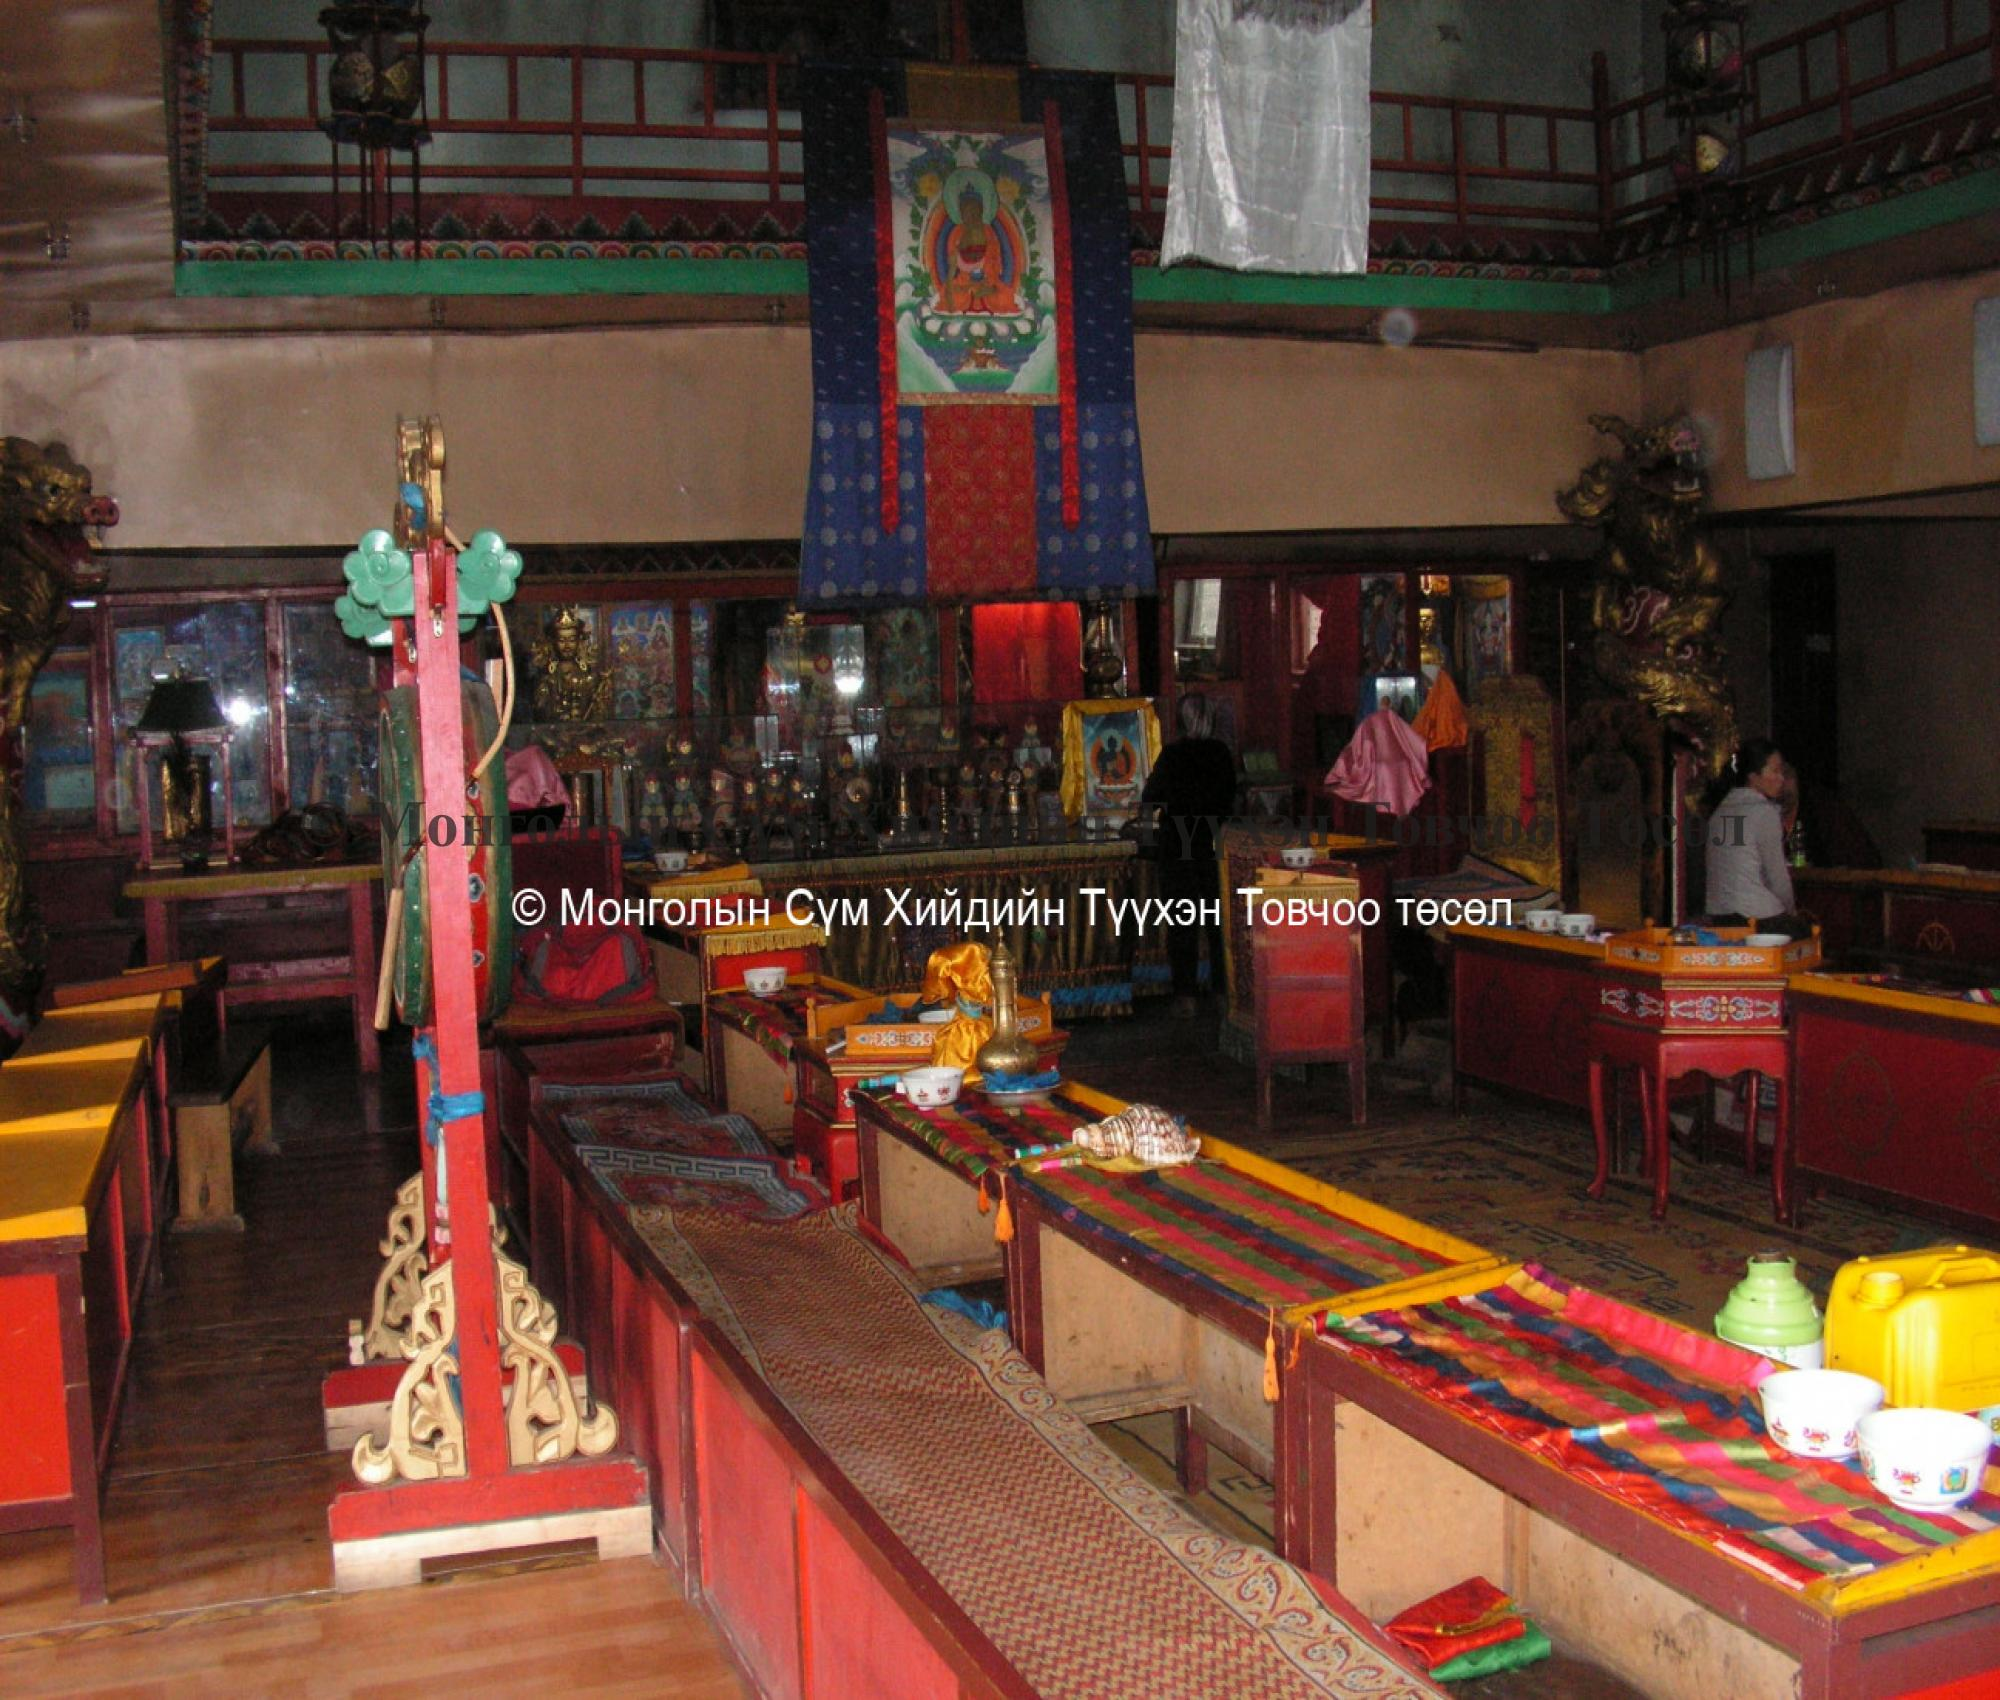 Interior of the temple